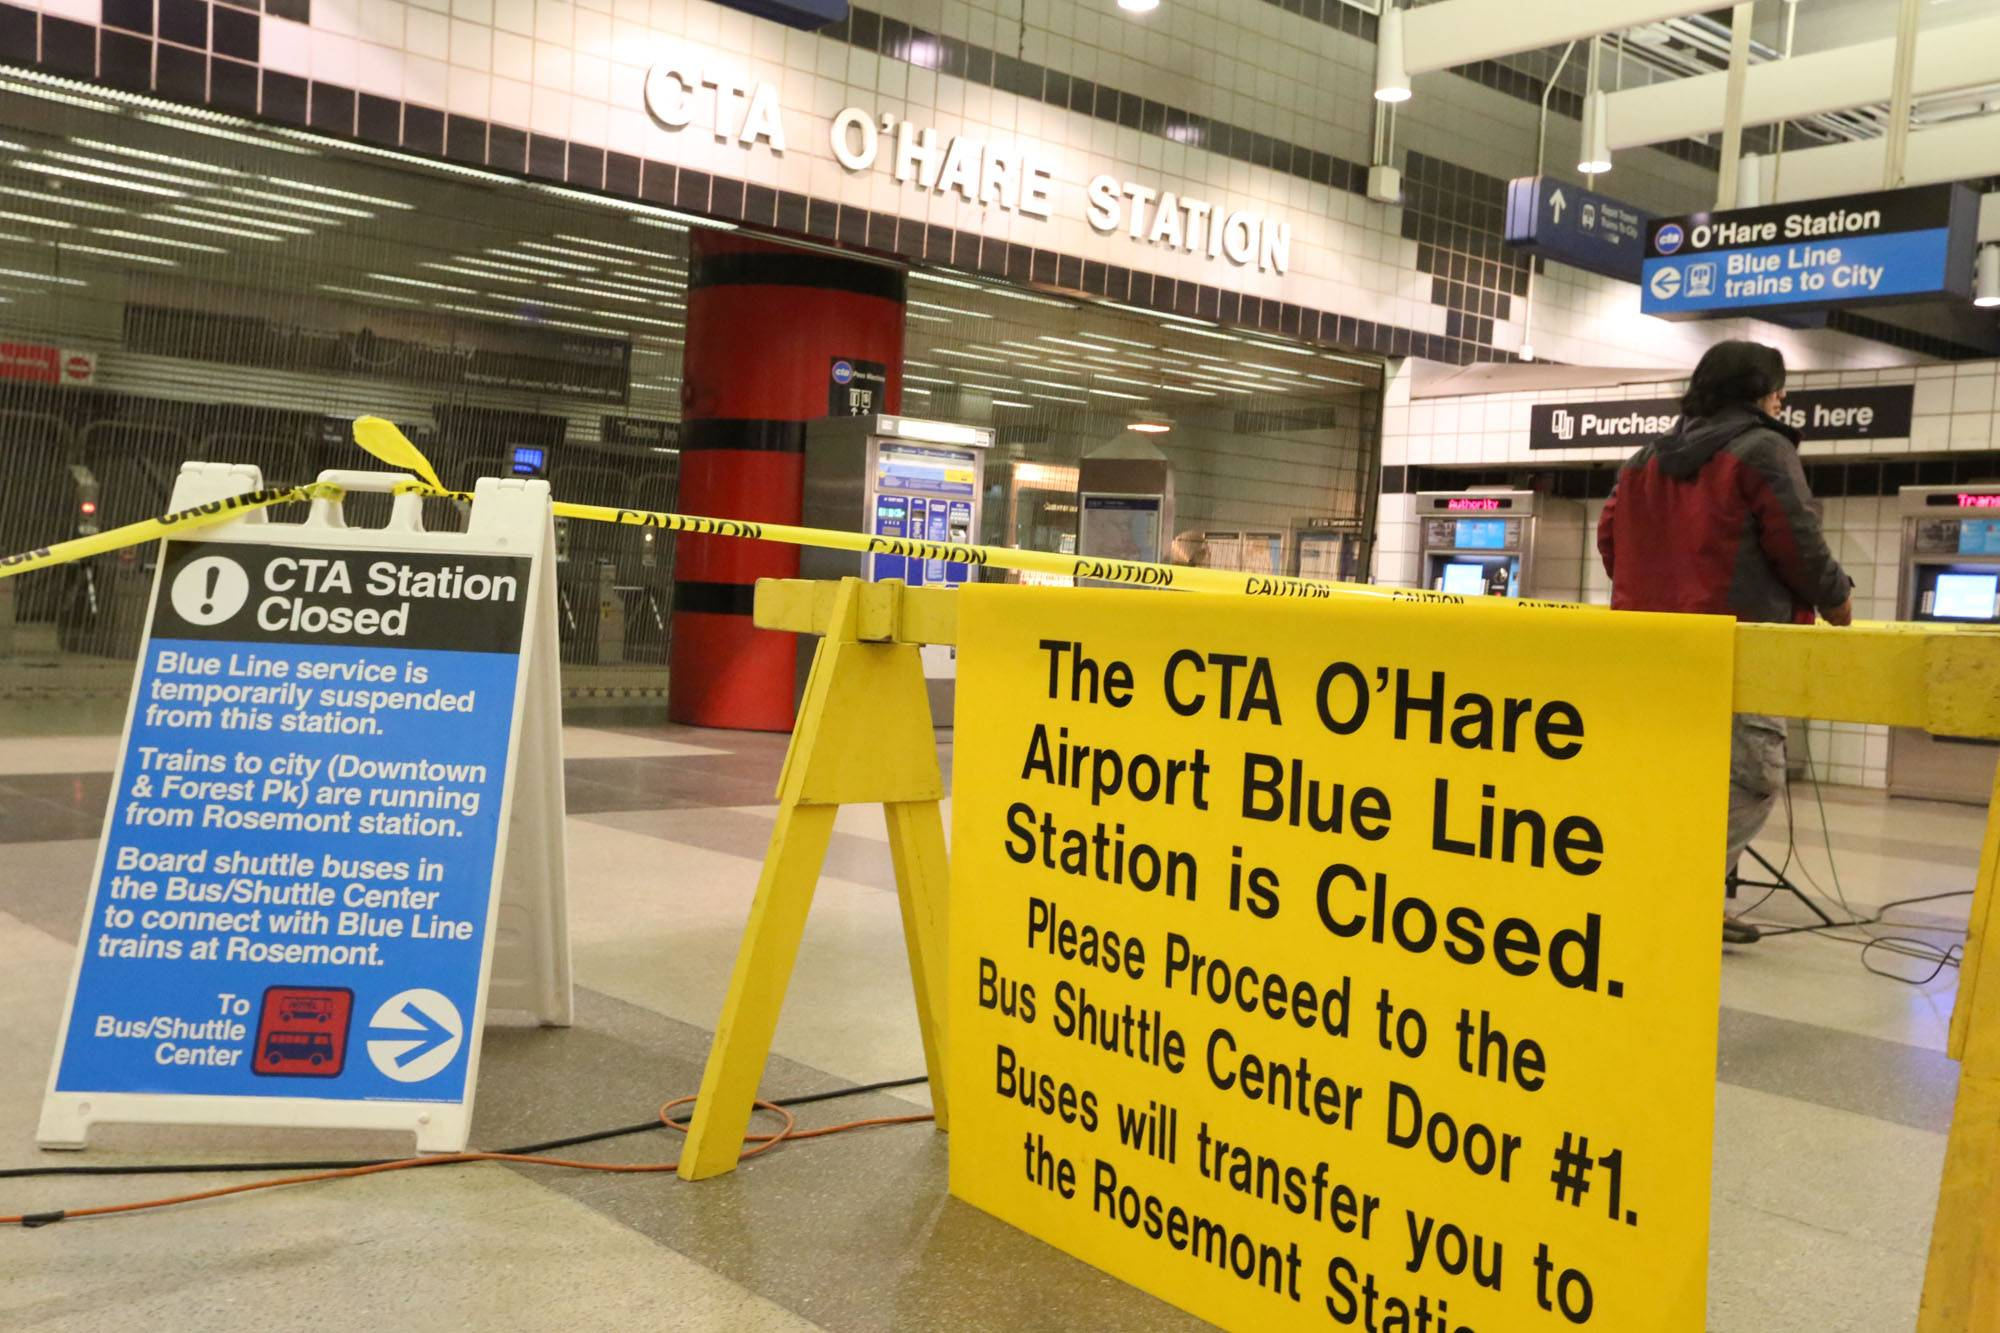 Signs in front of O'Hare CTA Station direct riders to take shuttle buses.